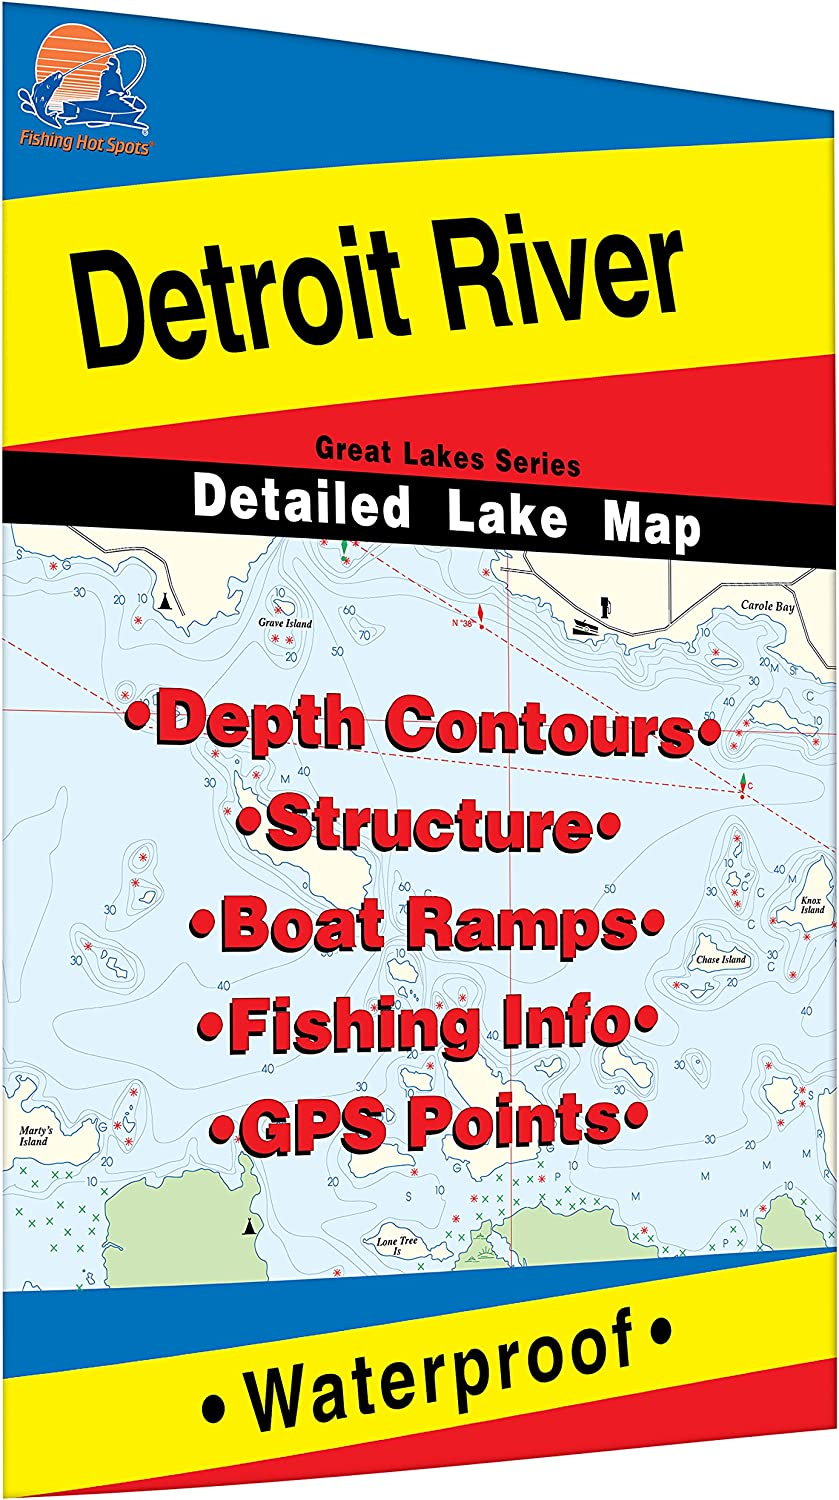 detroit river fishing map Amazon Com Detroit River Fishing Map Sports Outdoors detroit river fishing map